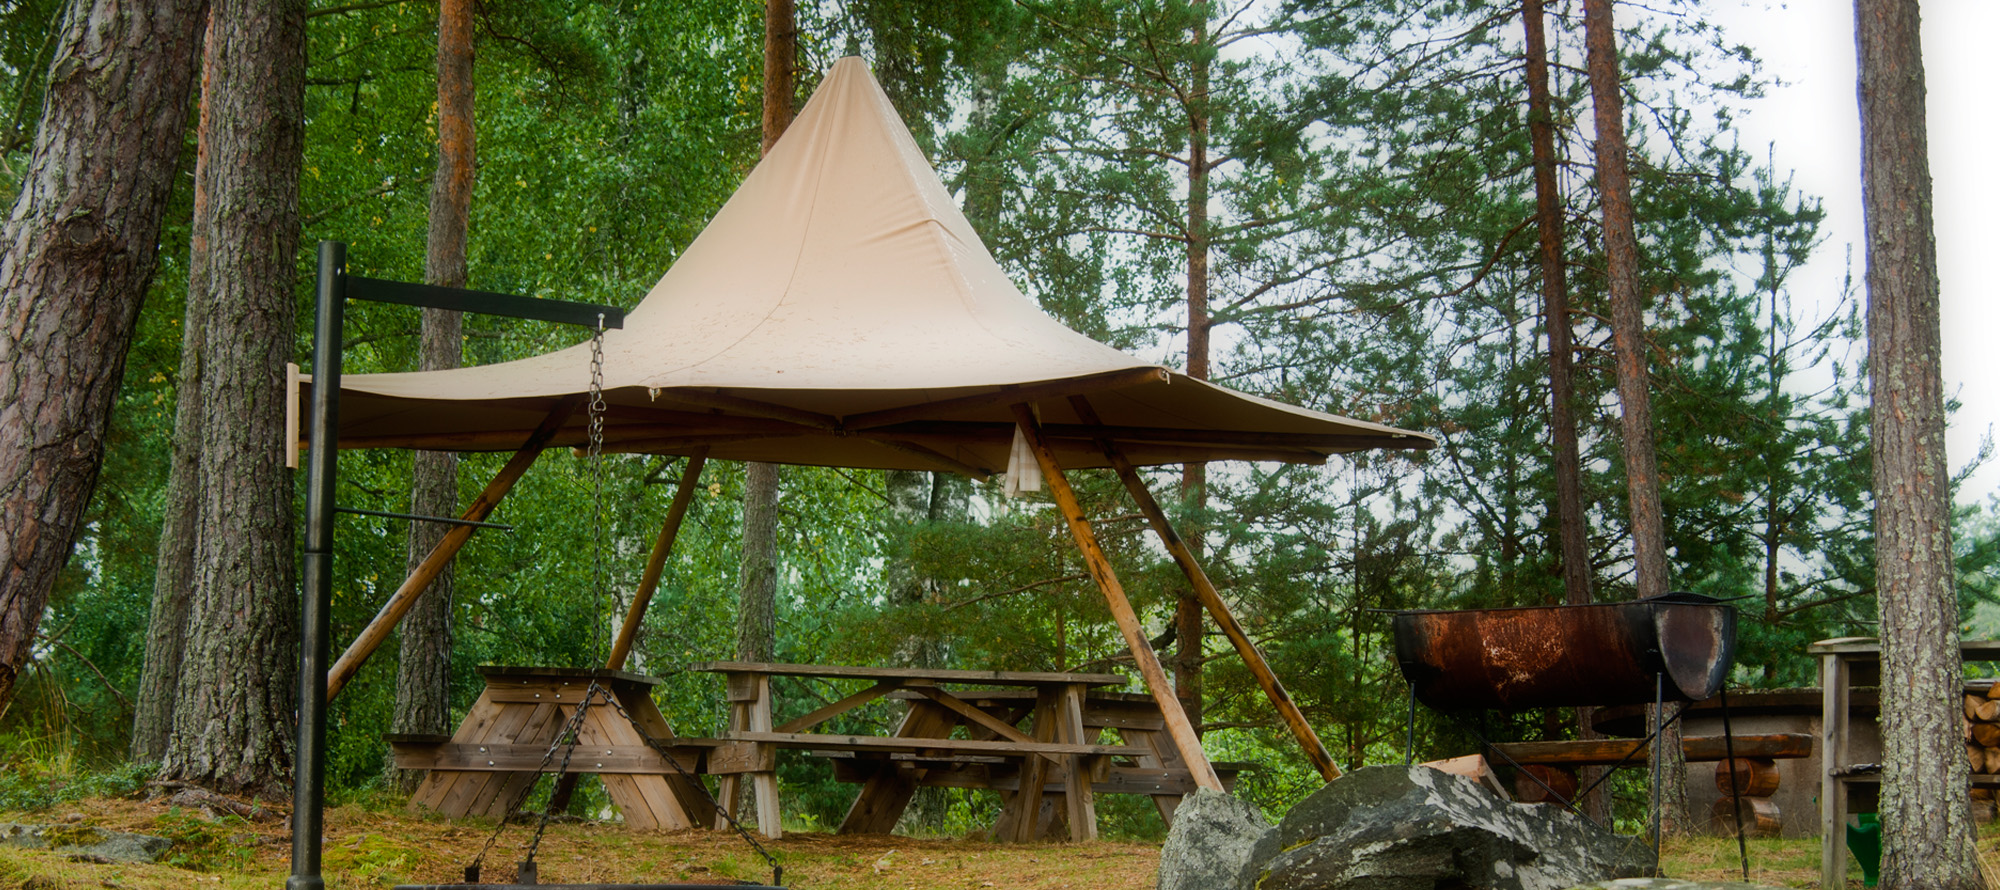 Tentipi Nimbus for covered outside dining - purchase event tipi